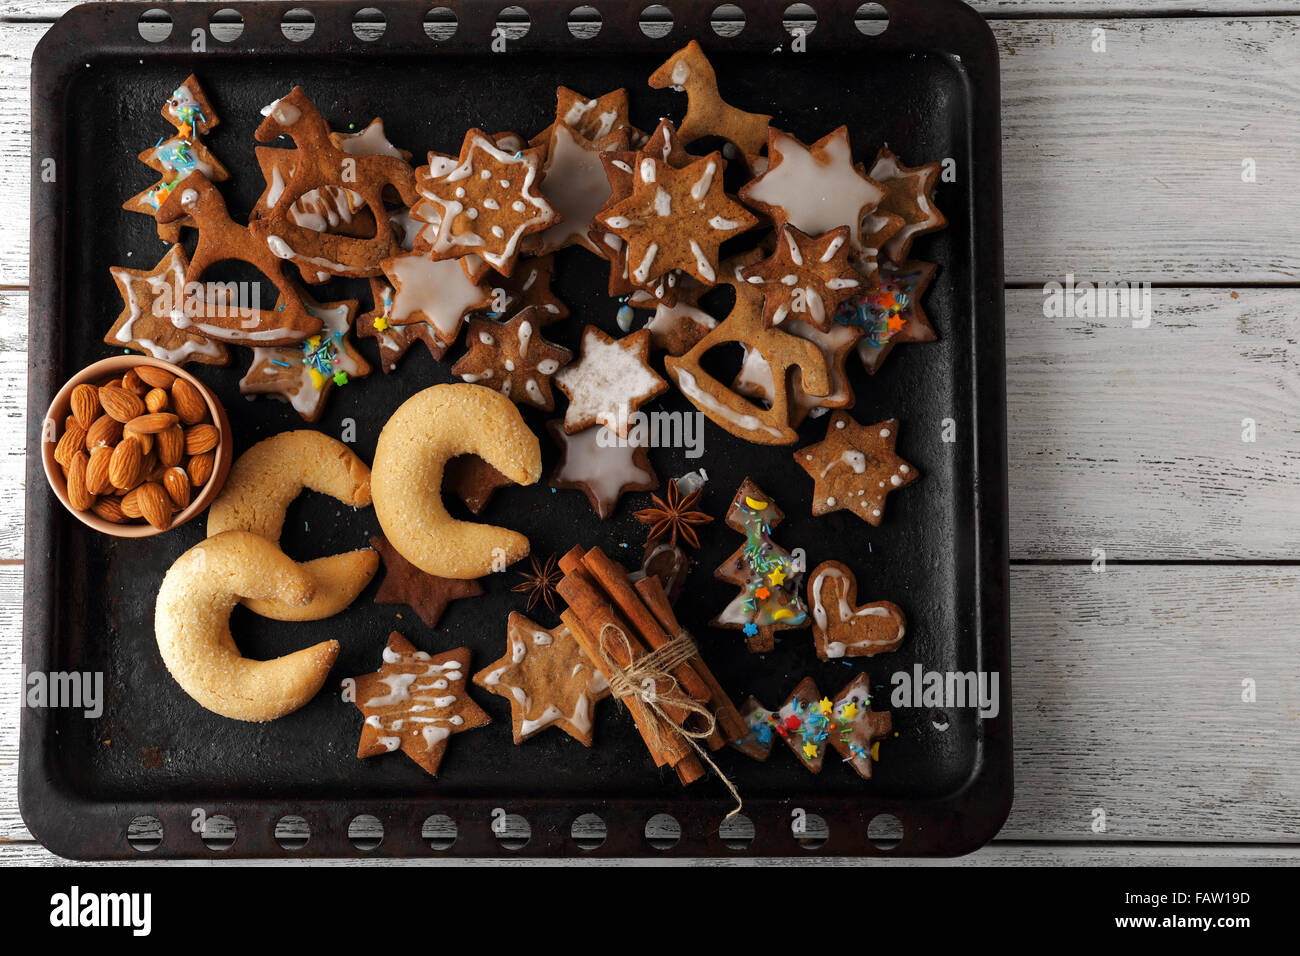 sweet gingerbread cookies for christmas on tray - Stock Image